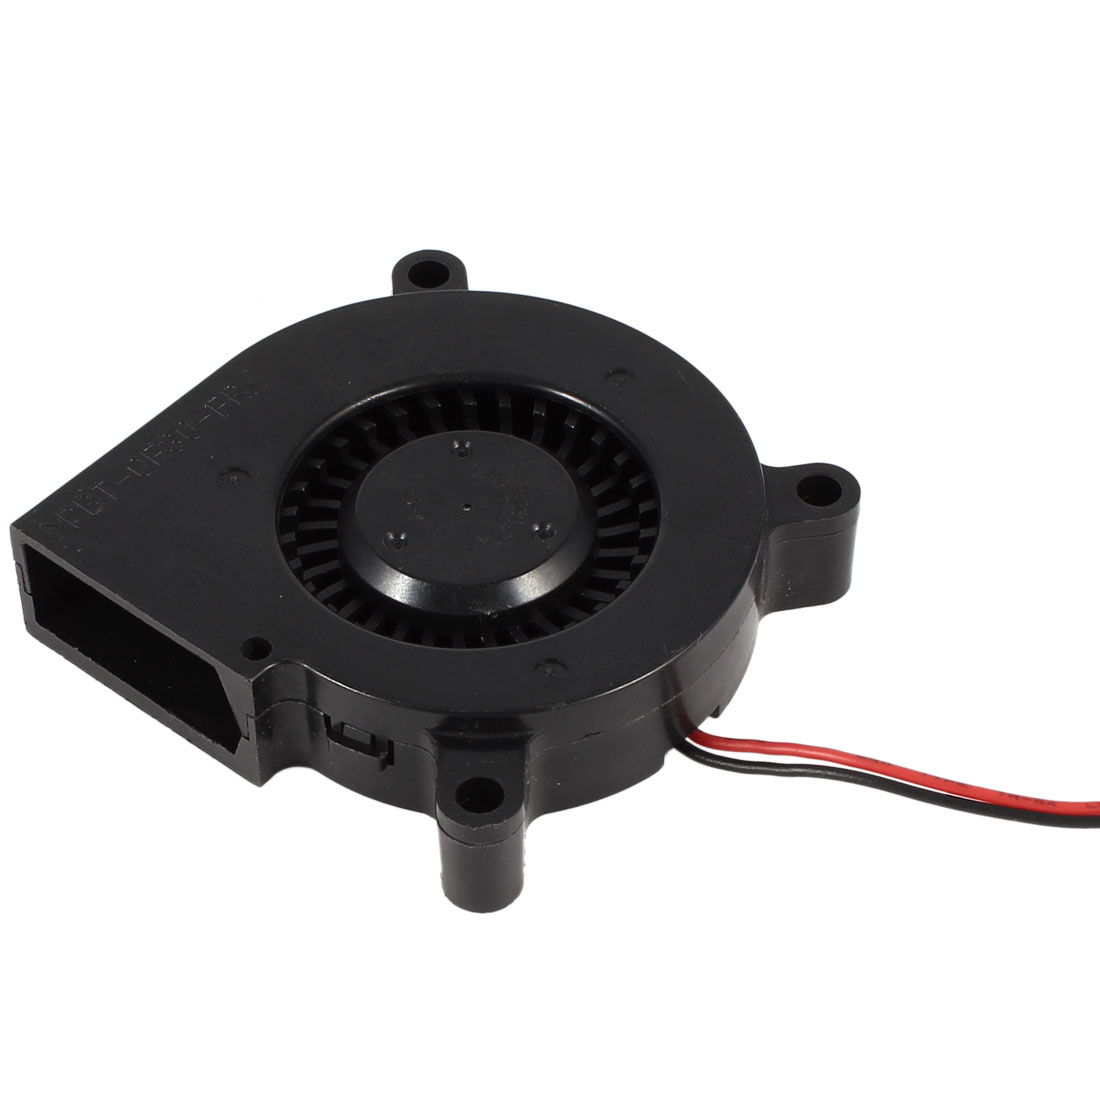 DC 12V 0.18A Brushless 2 Wires Cooling Blower Fan Cooler 6015S 60mmx15mm Black